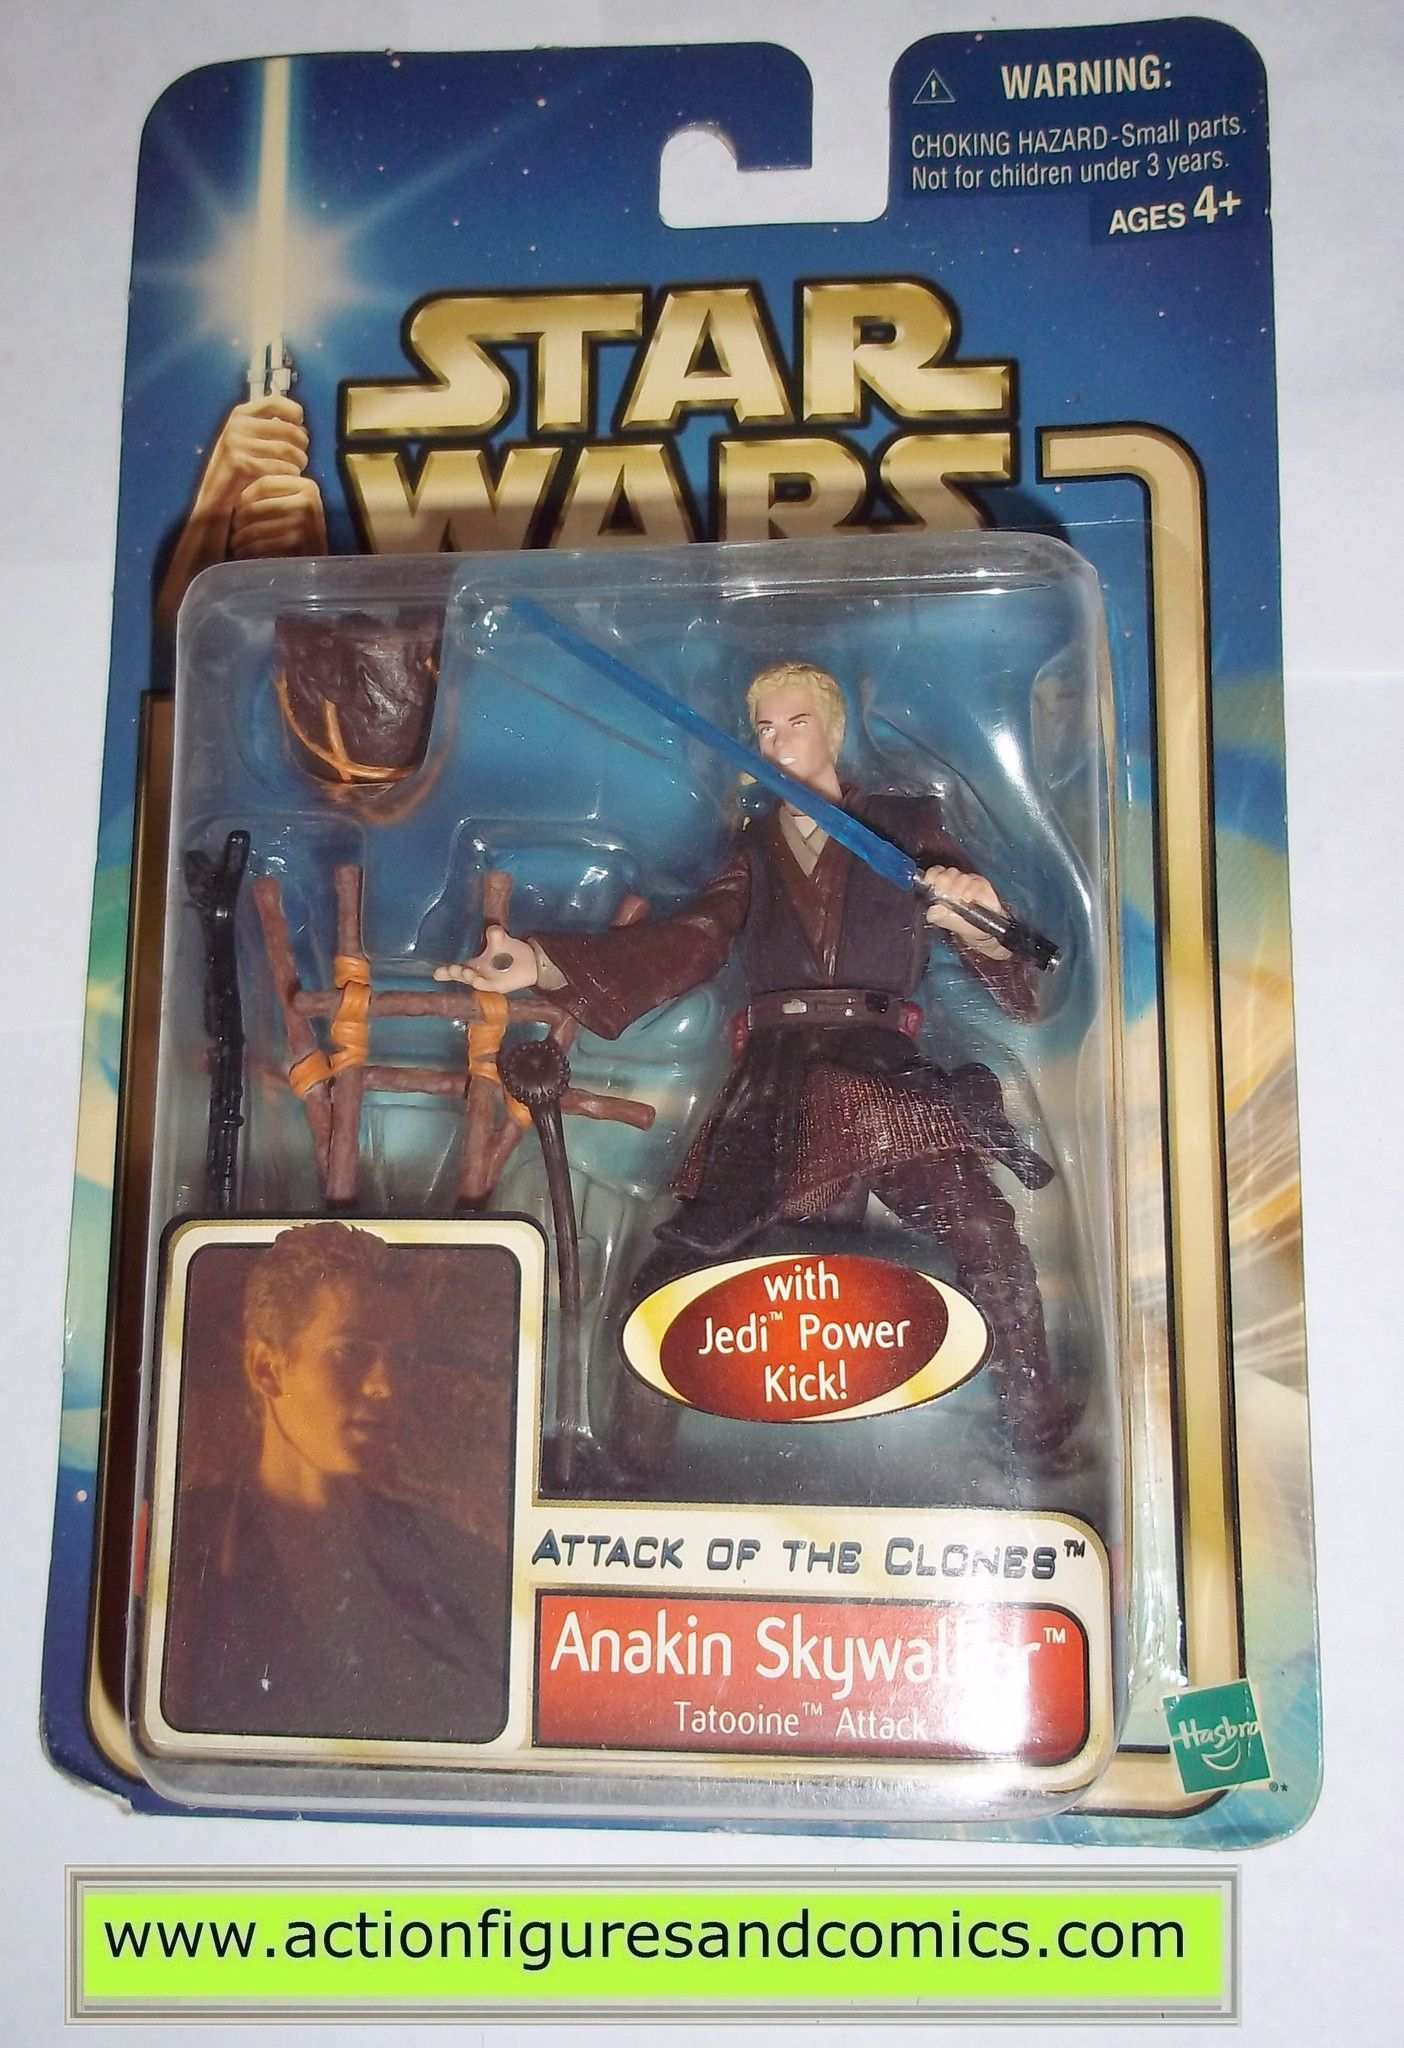 New Star Wars Episode 2 Attack of the Clones Action Figures 2002 Collection 1